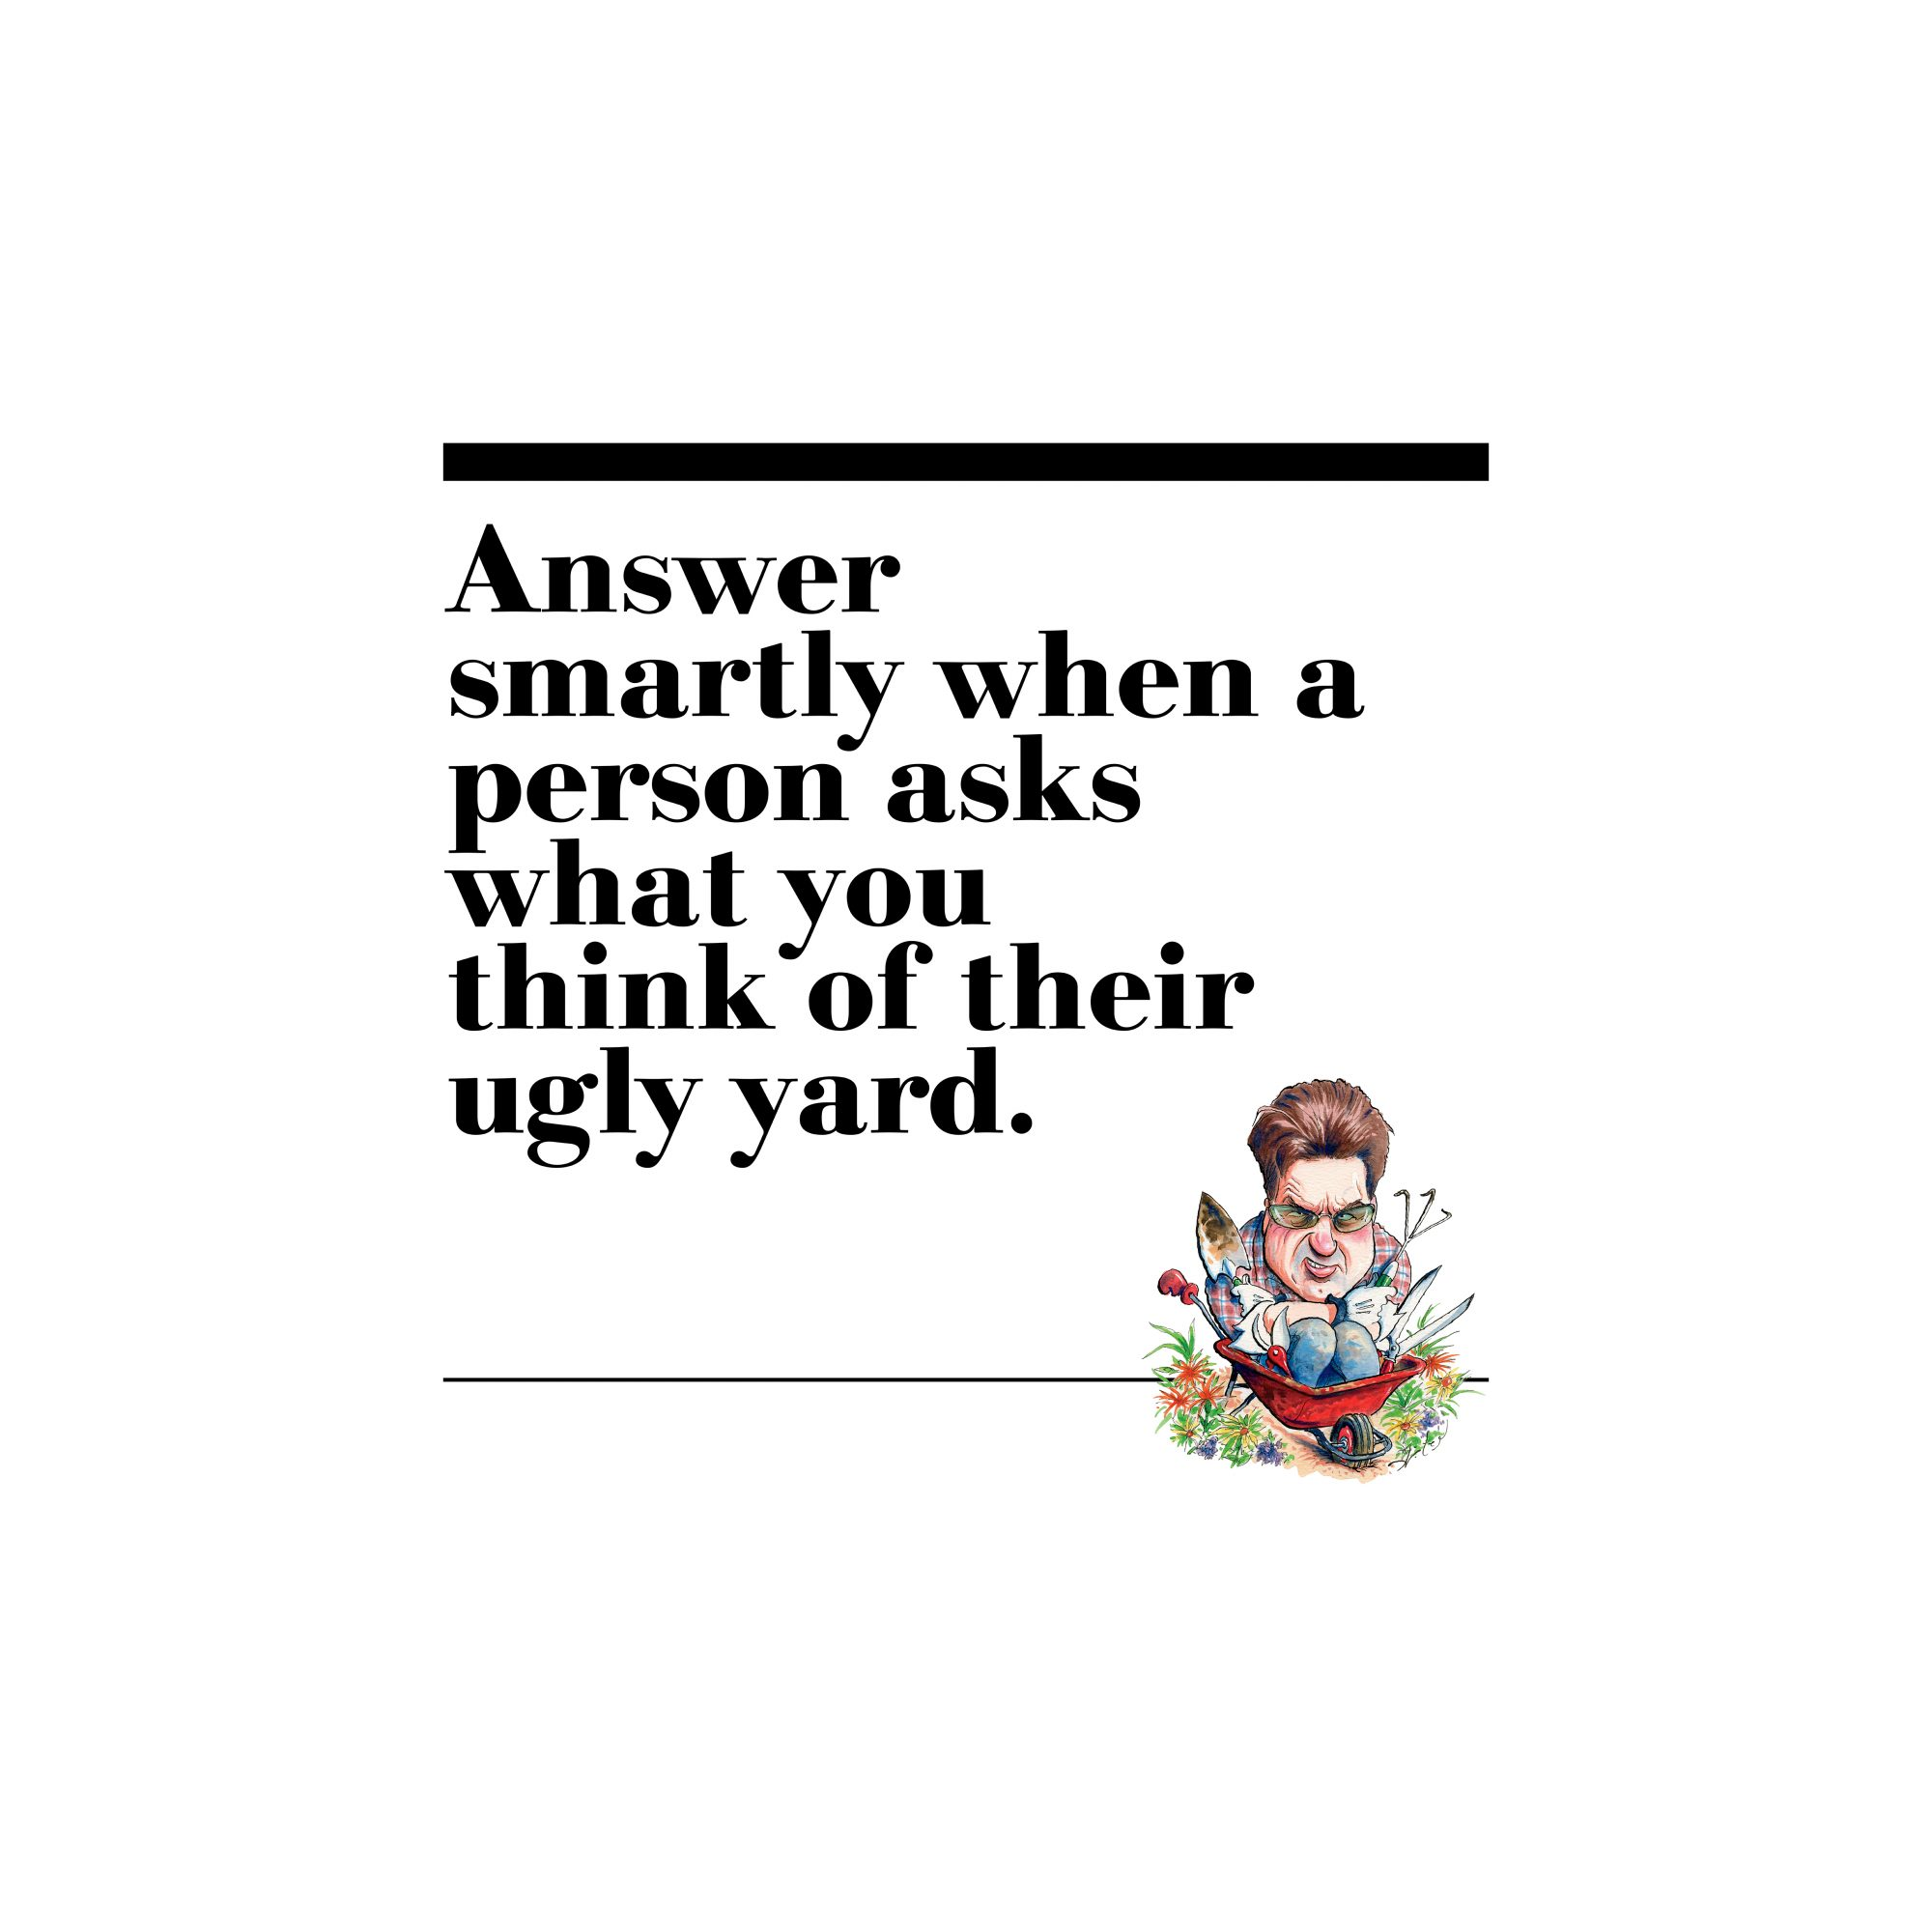 41. Answer smartly when a person asks what you think of their ugly yard.